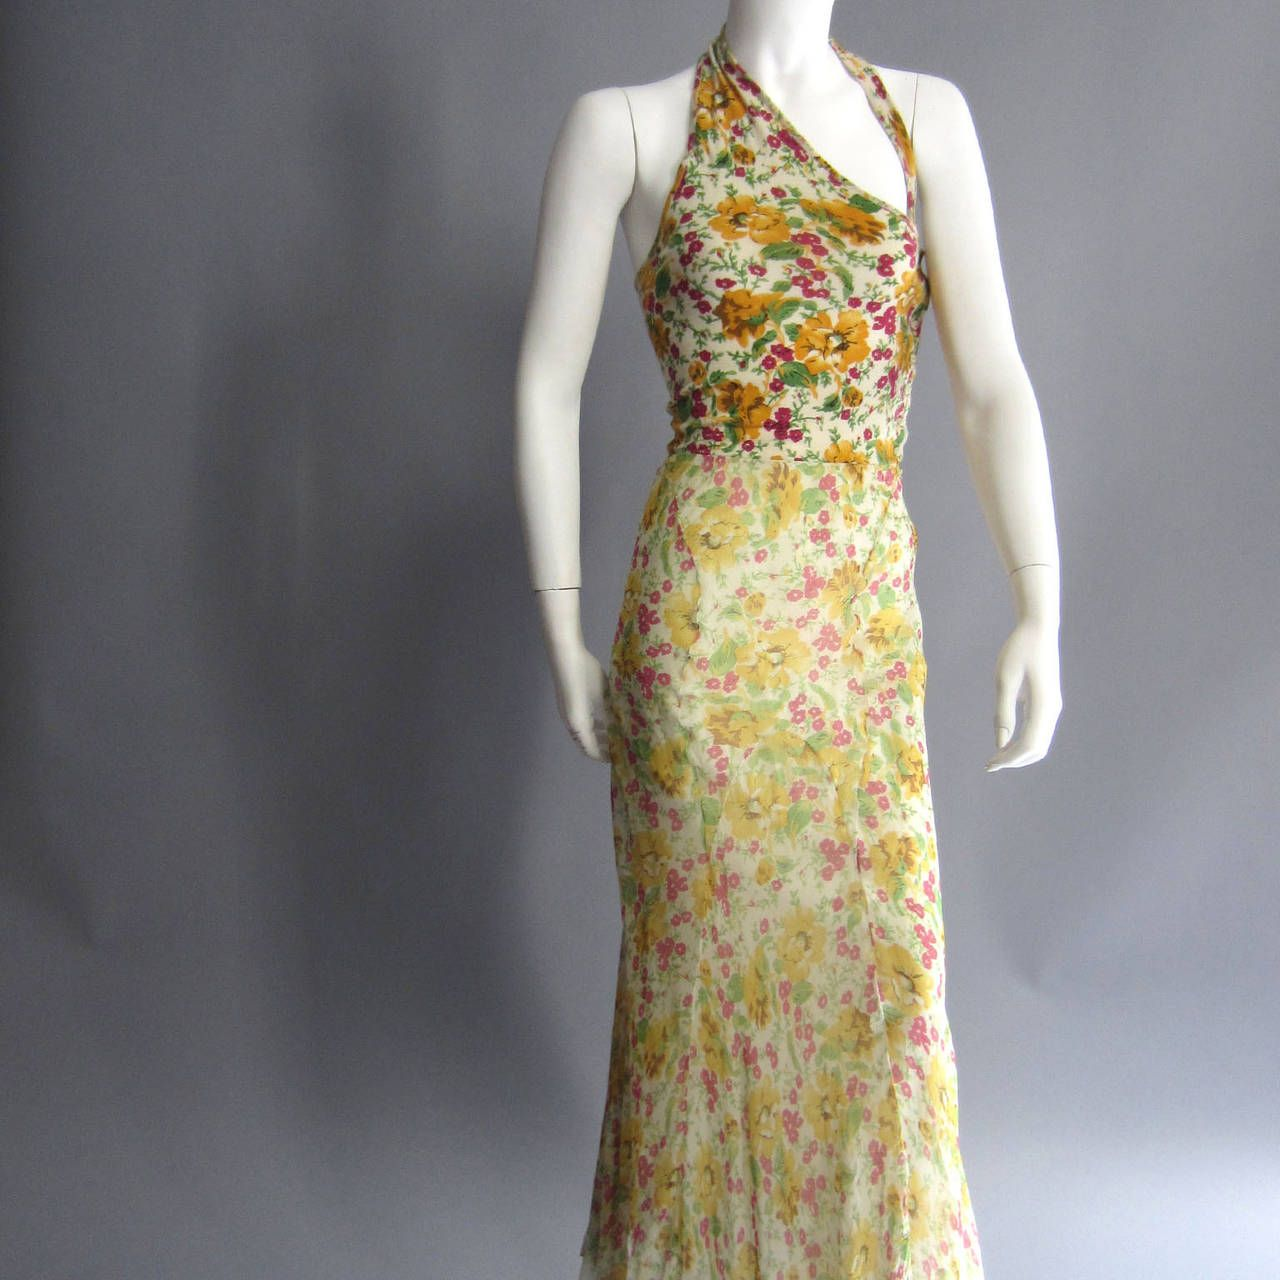 c51d205eff JOHN GALLIANO for CHRISTIAN DIOR Floral Cashmere and Chiffon Bias Gown